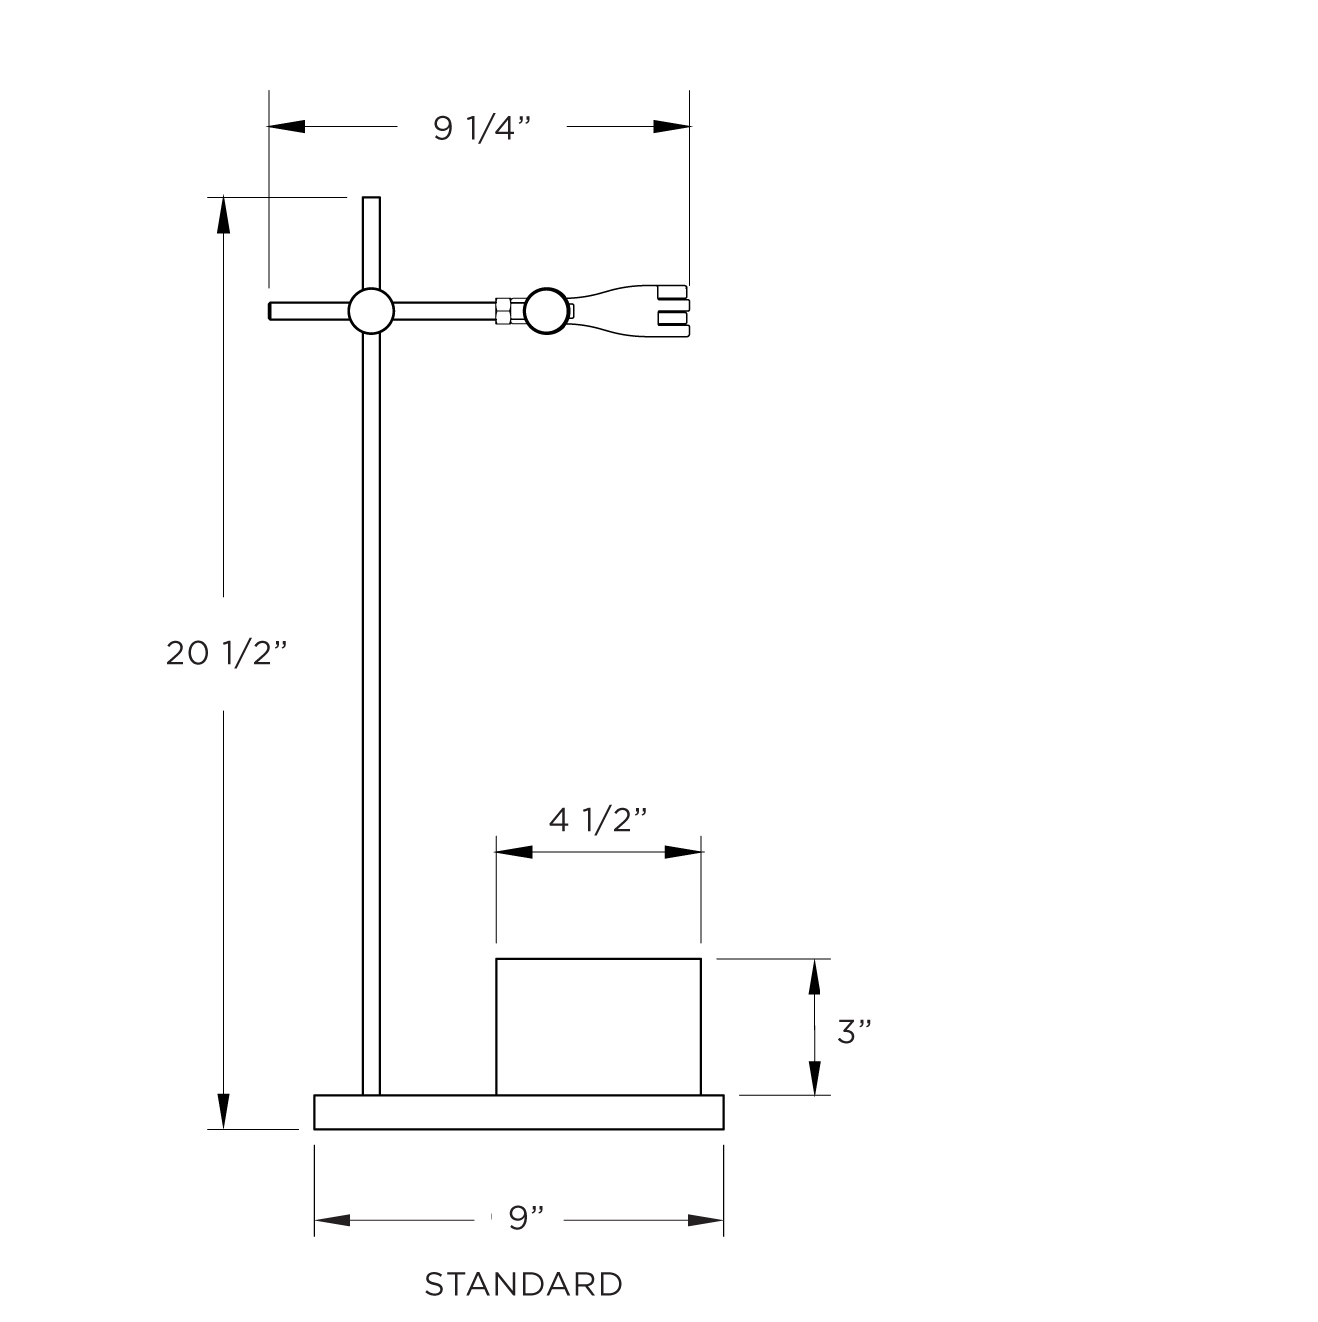 Table Mount Drawing.jpg